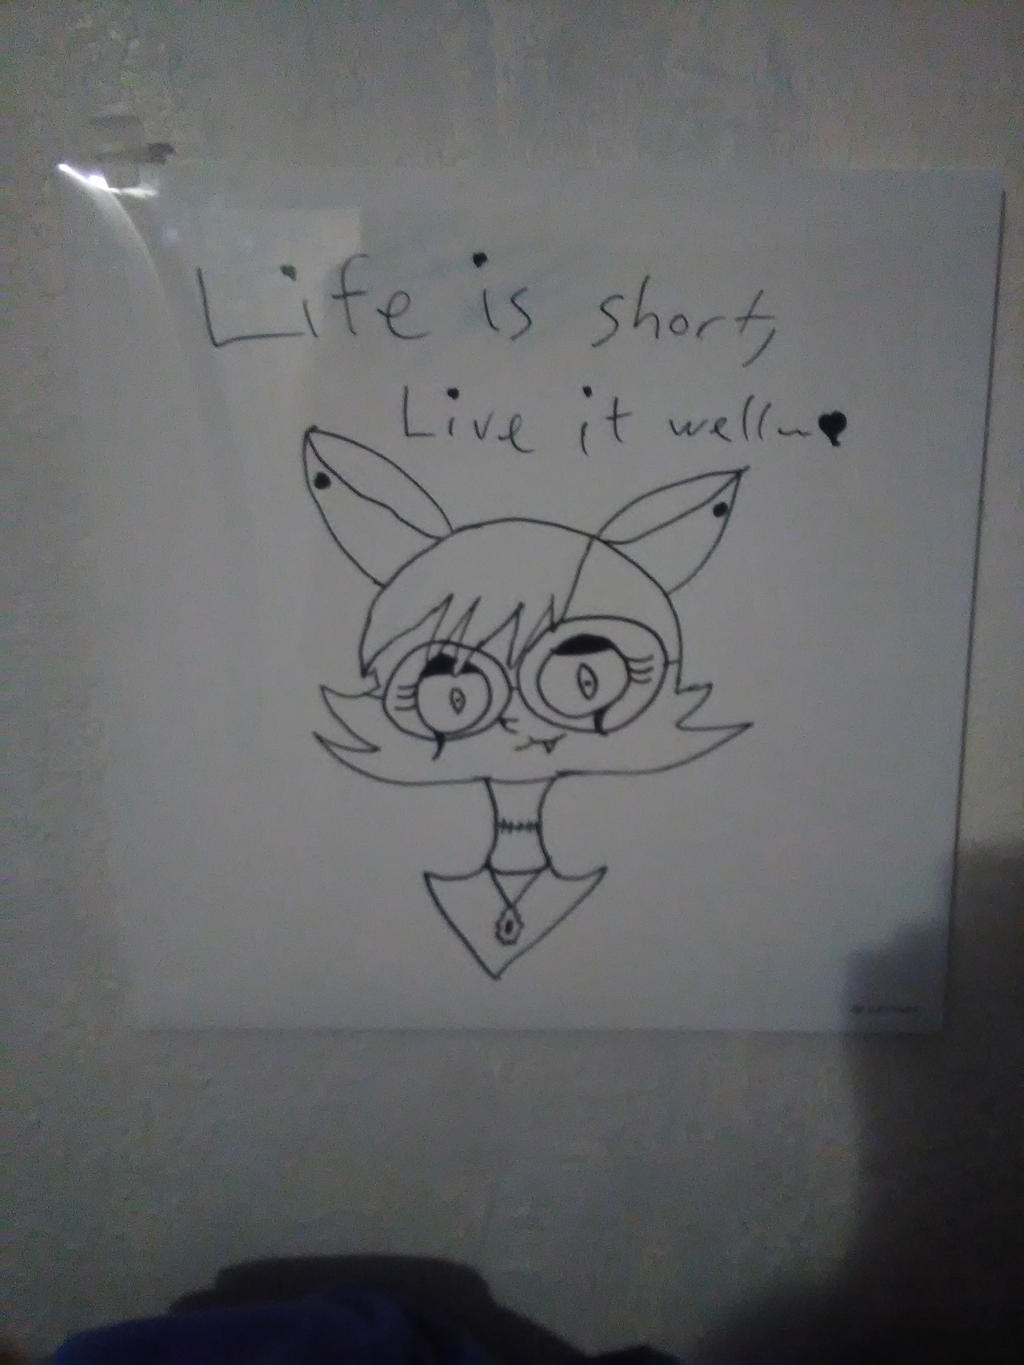 Whiteboard drawing by askcarmalapple on deviantart for Cool stuff to draw on a whiteboard